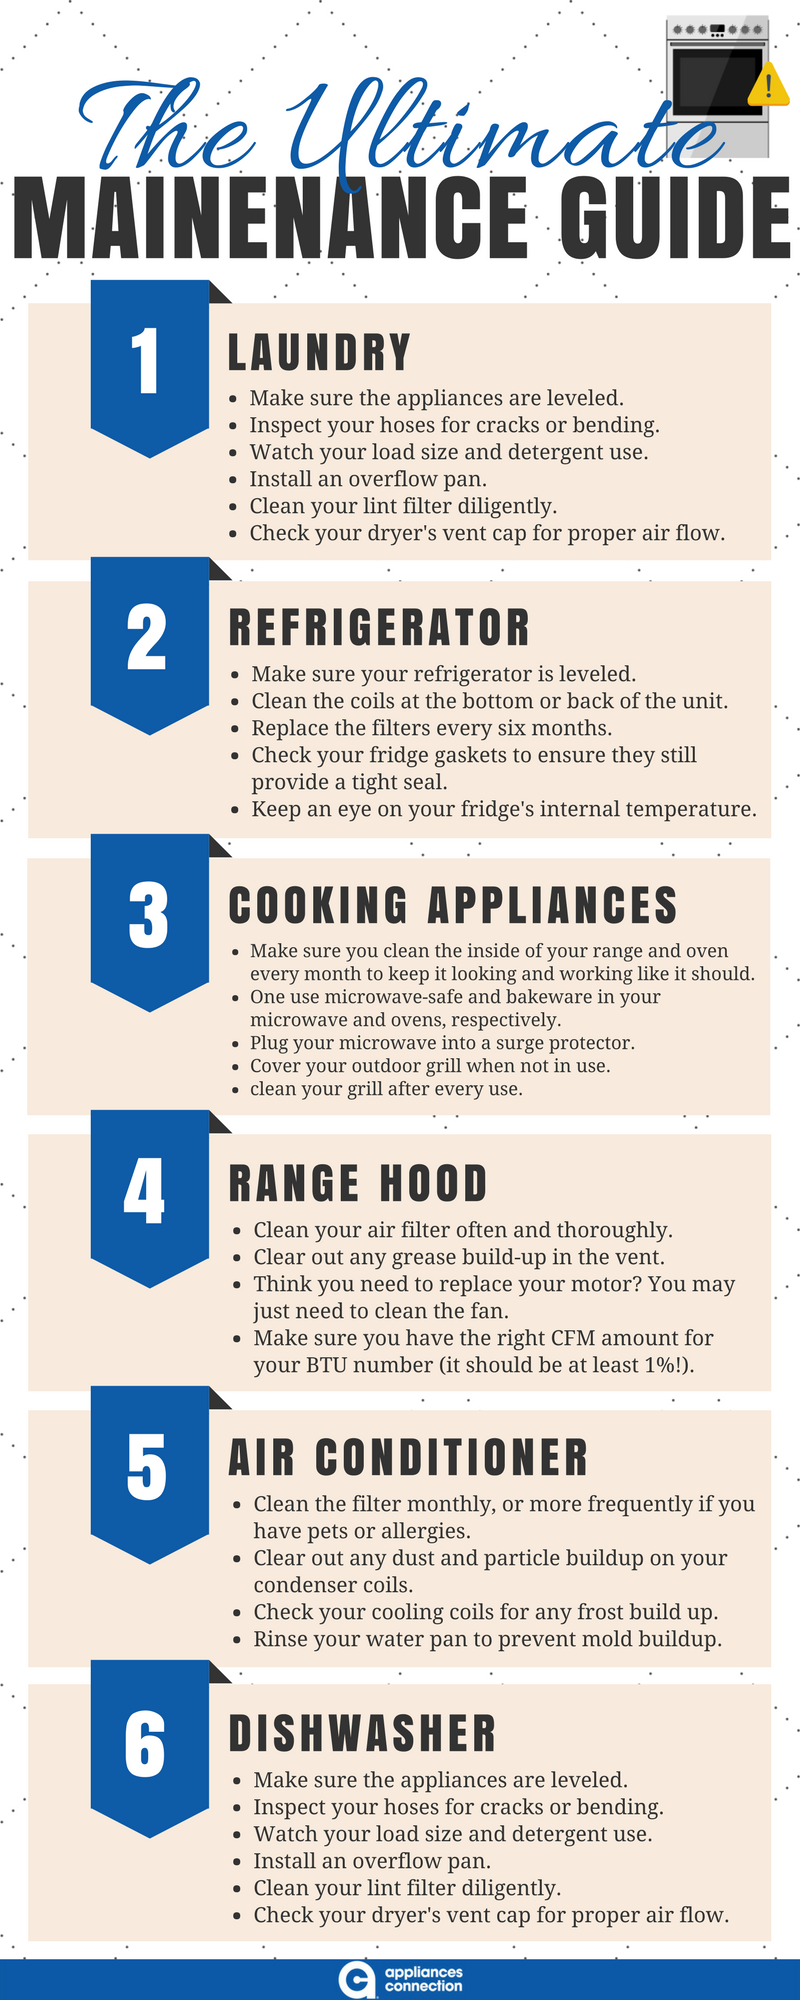 Appliances Connection infographic on basic appliance maintenance tips to remember.